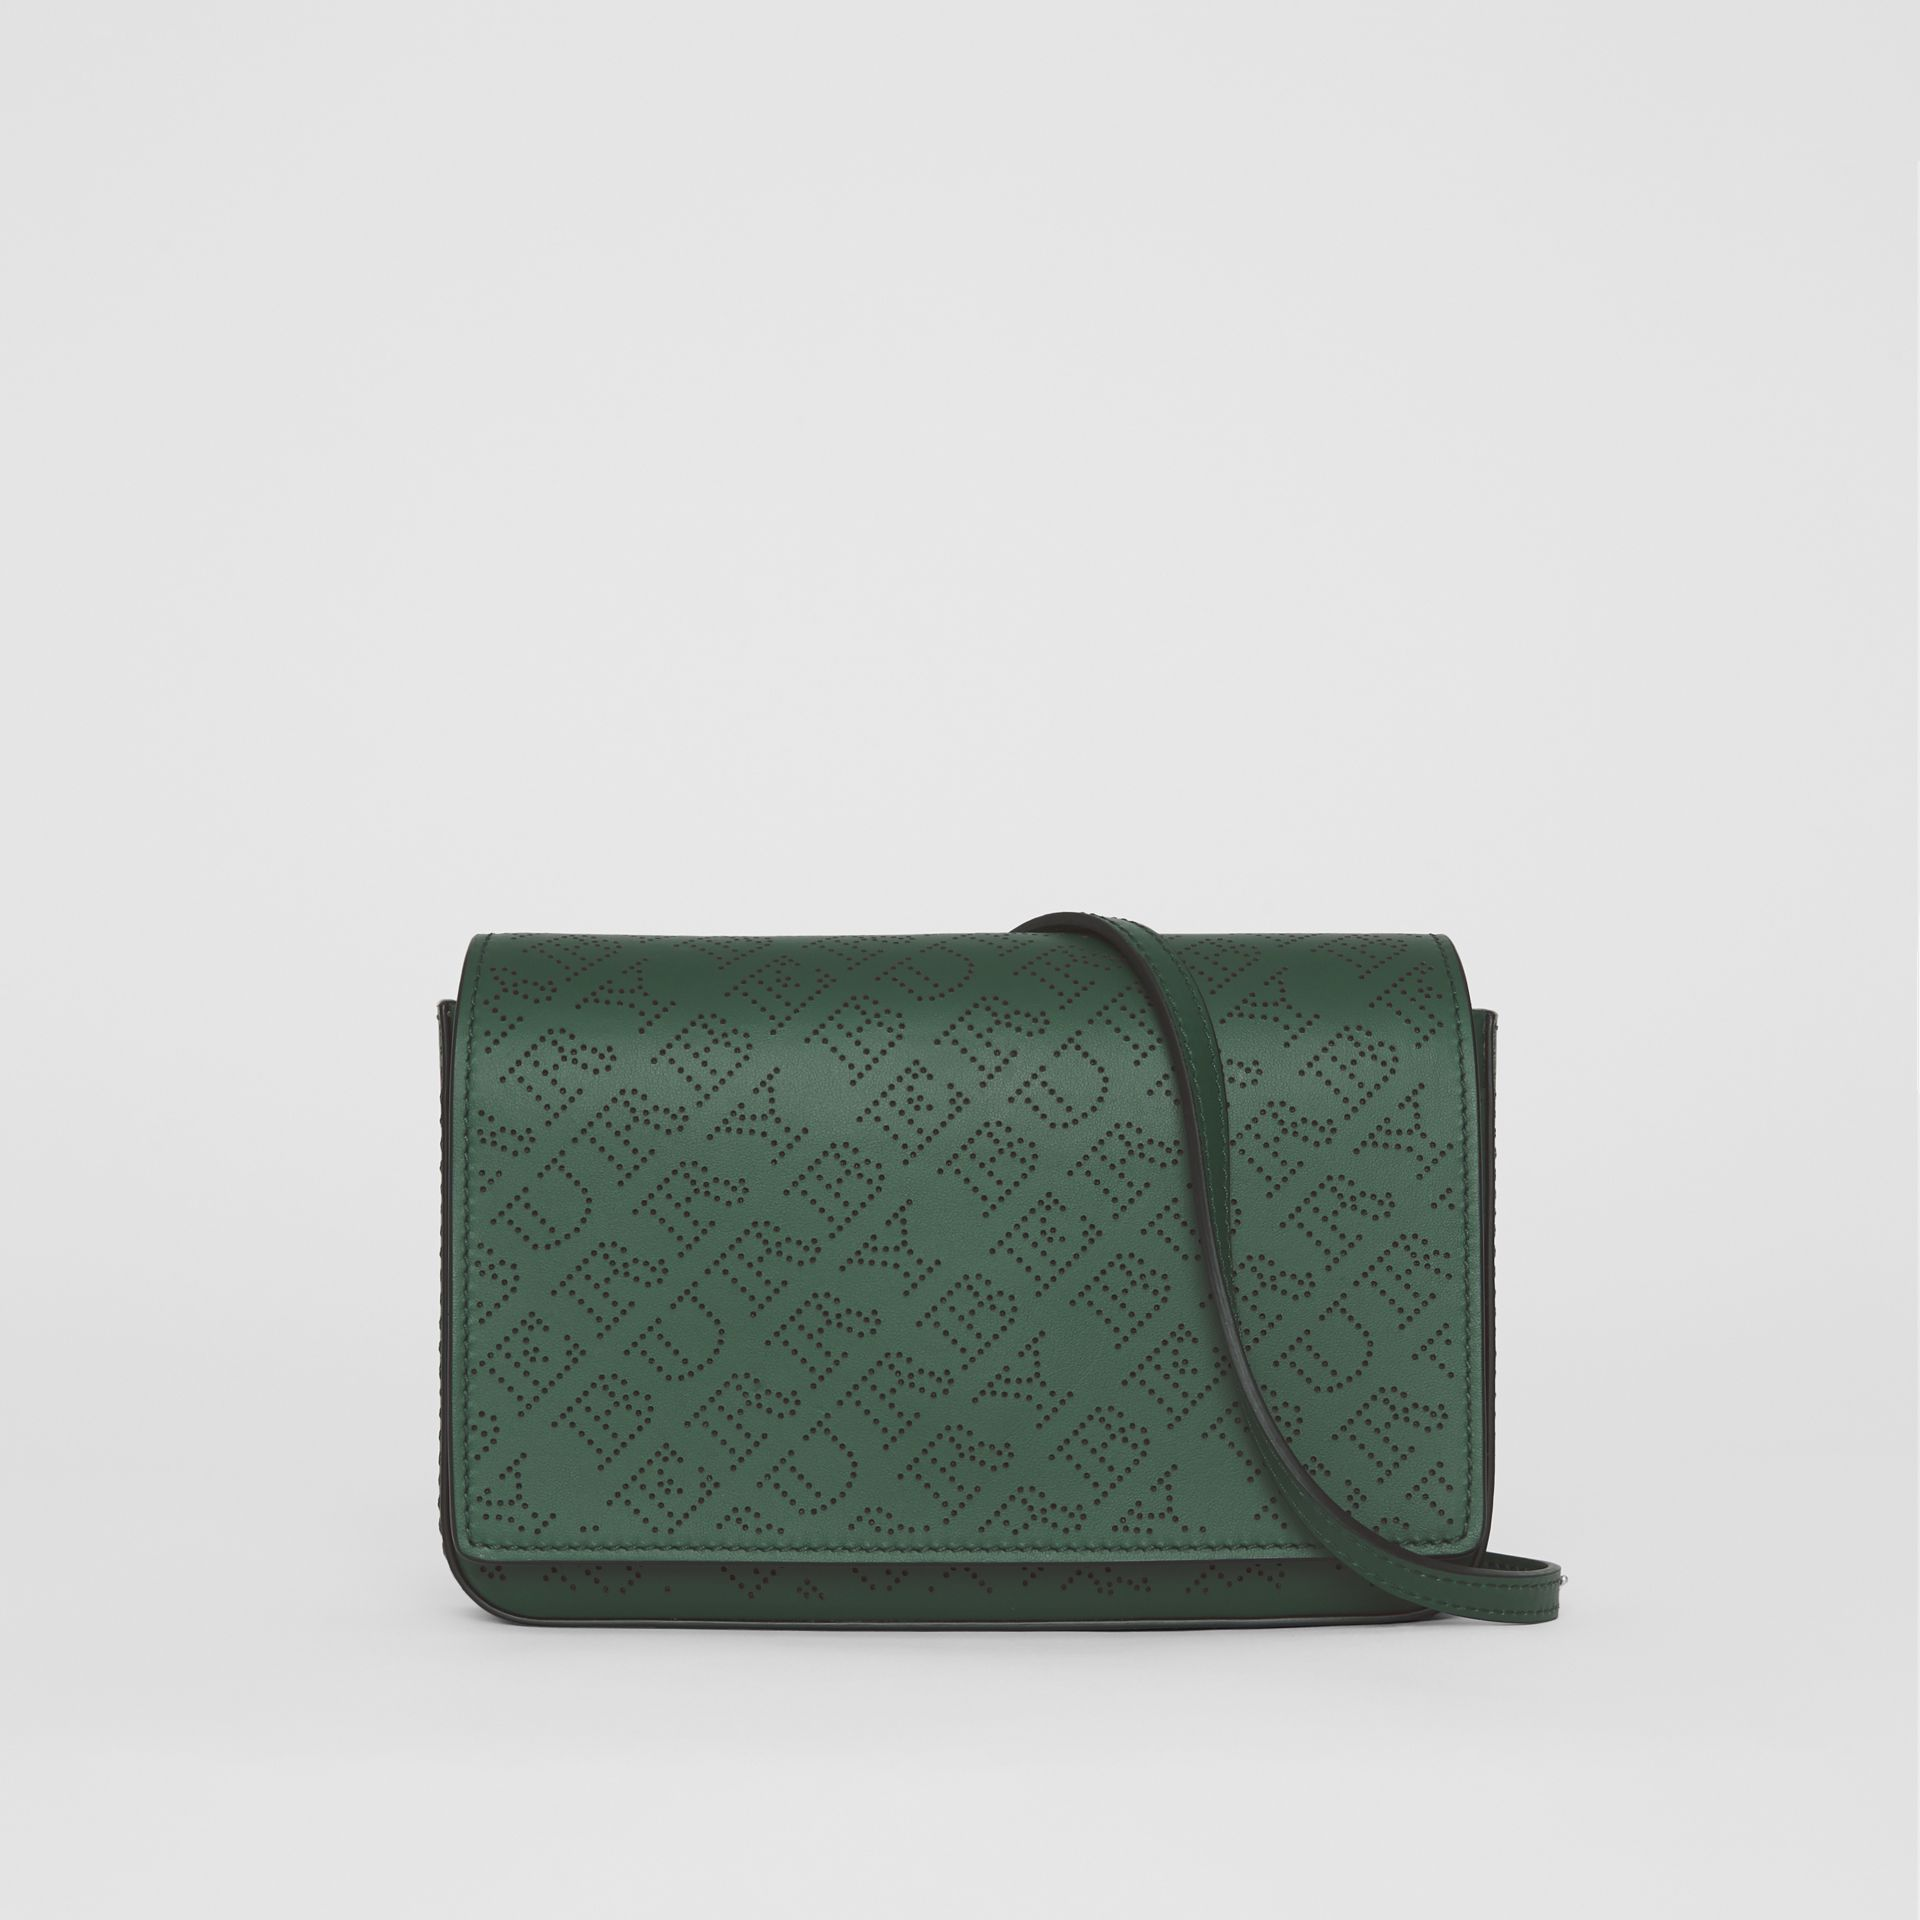 Perforated Logo Leather Wallet with Detachable Strap in Vintage Green - Women | Burberry - gallery image 2